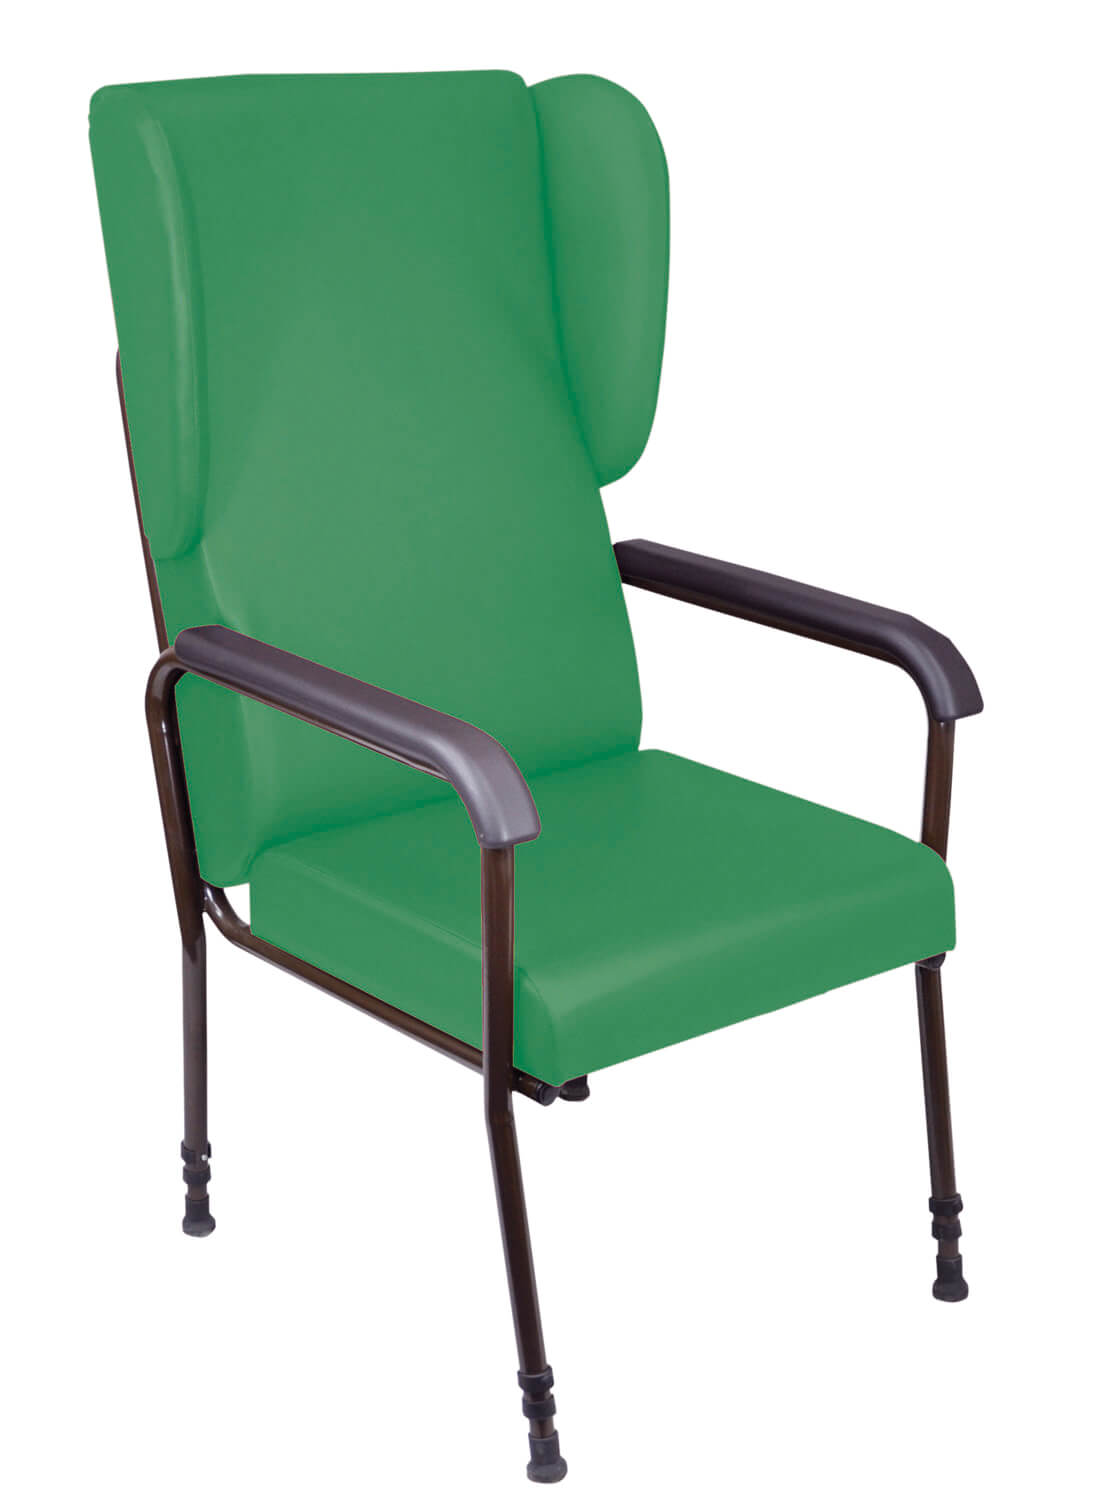 Green Adjustable Chair